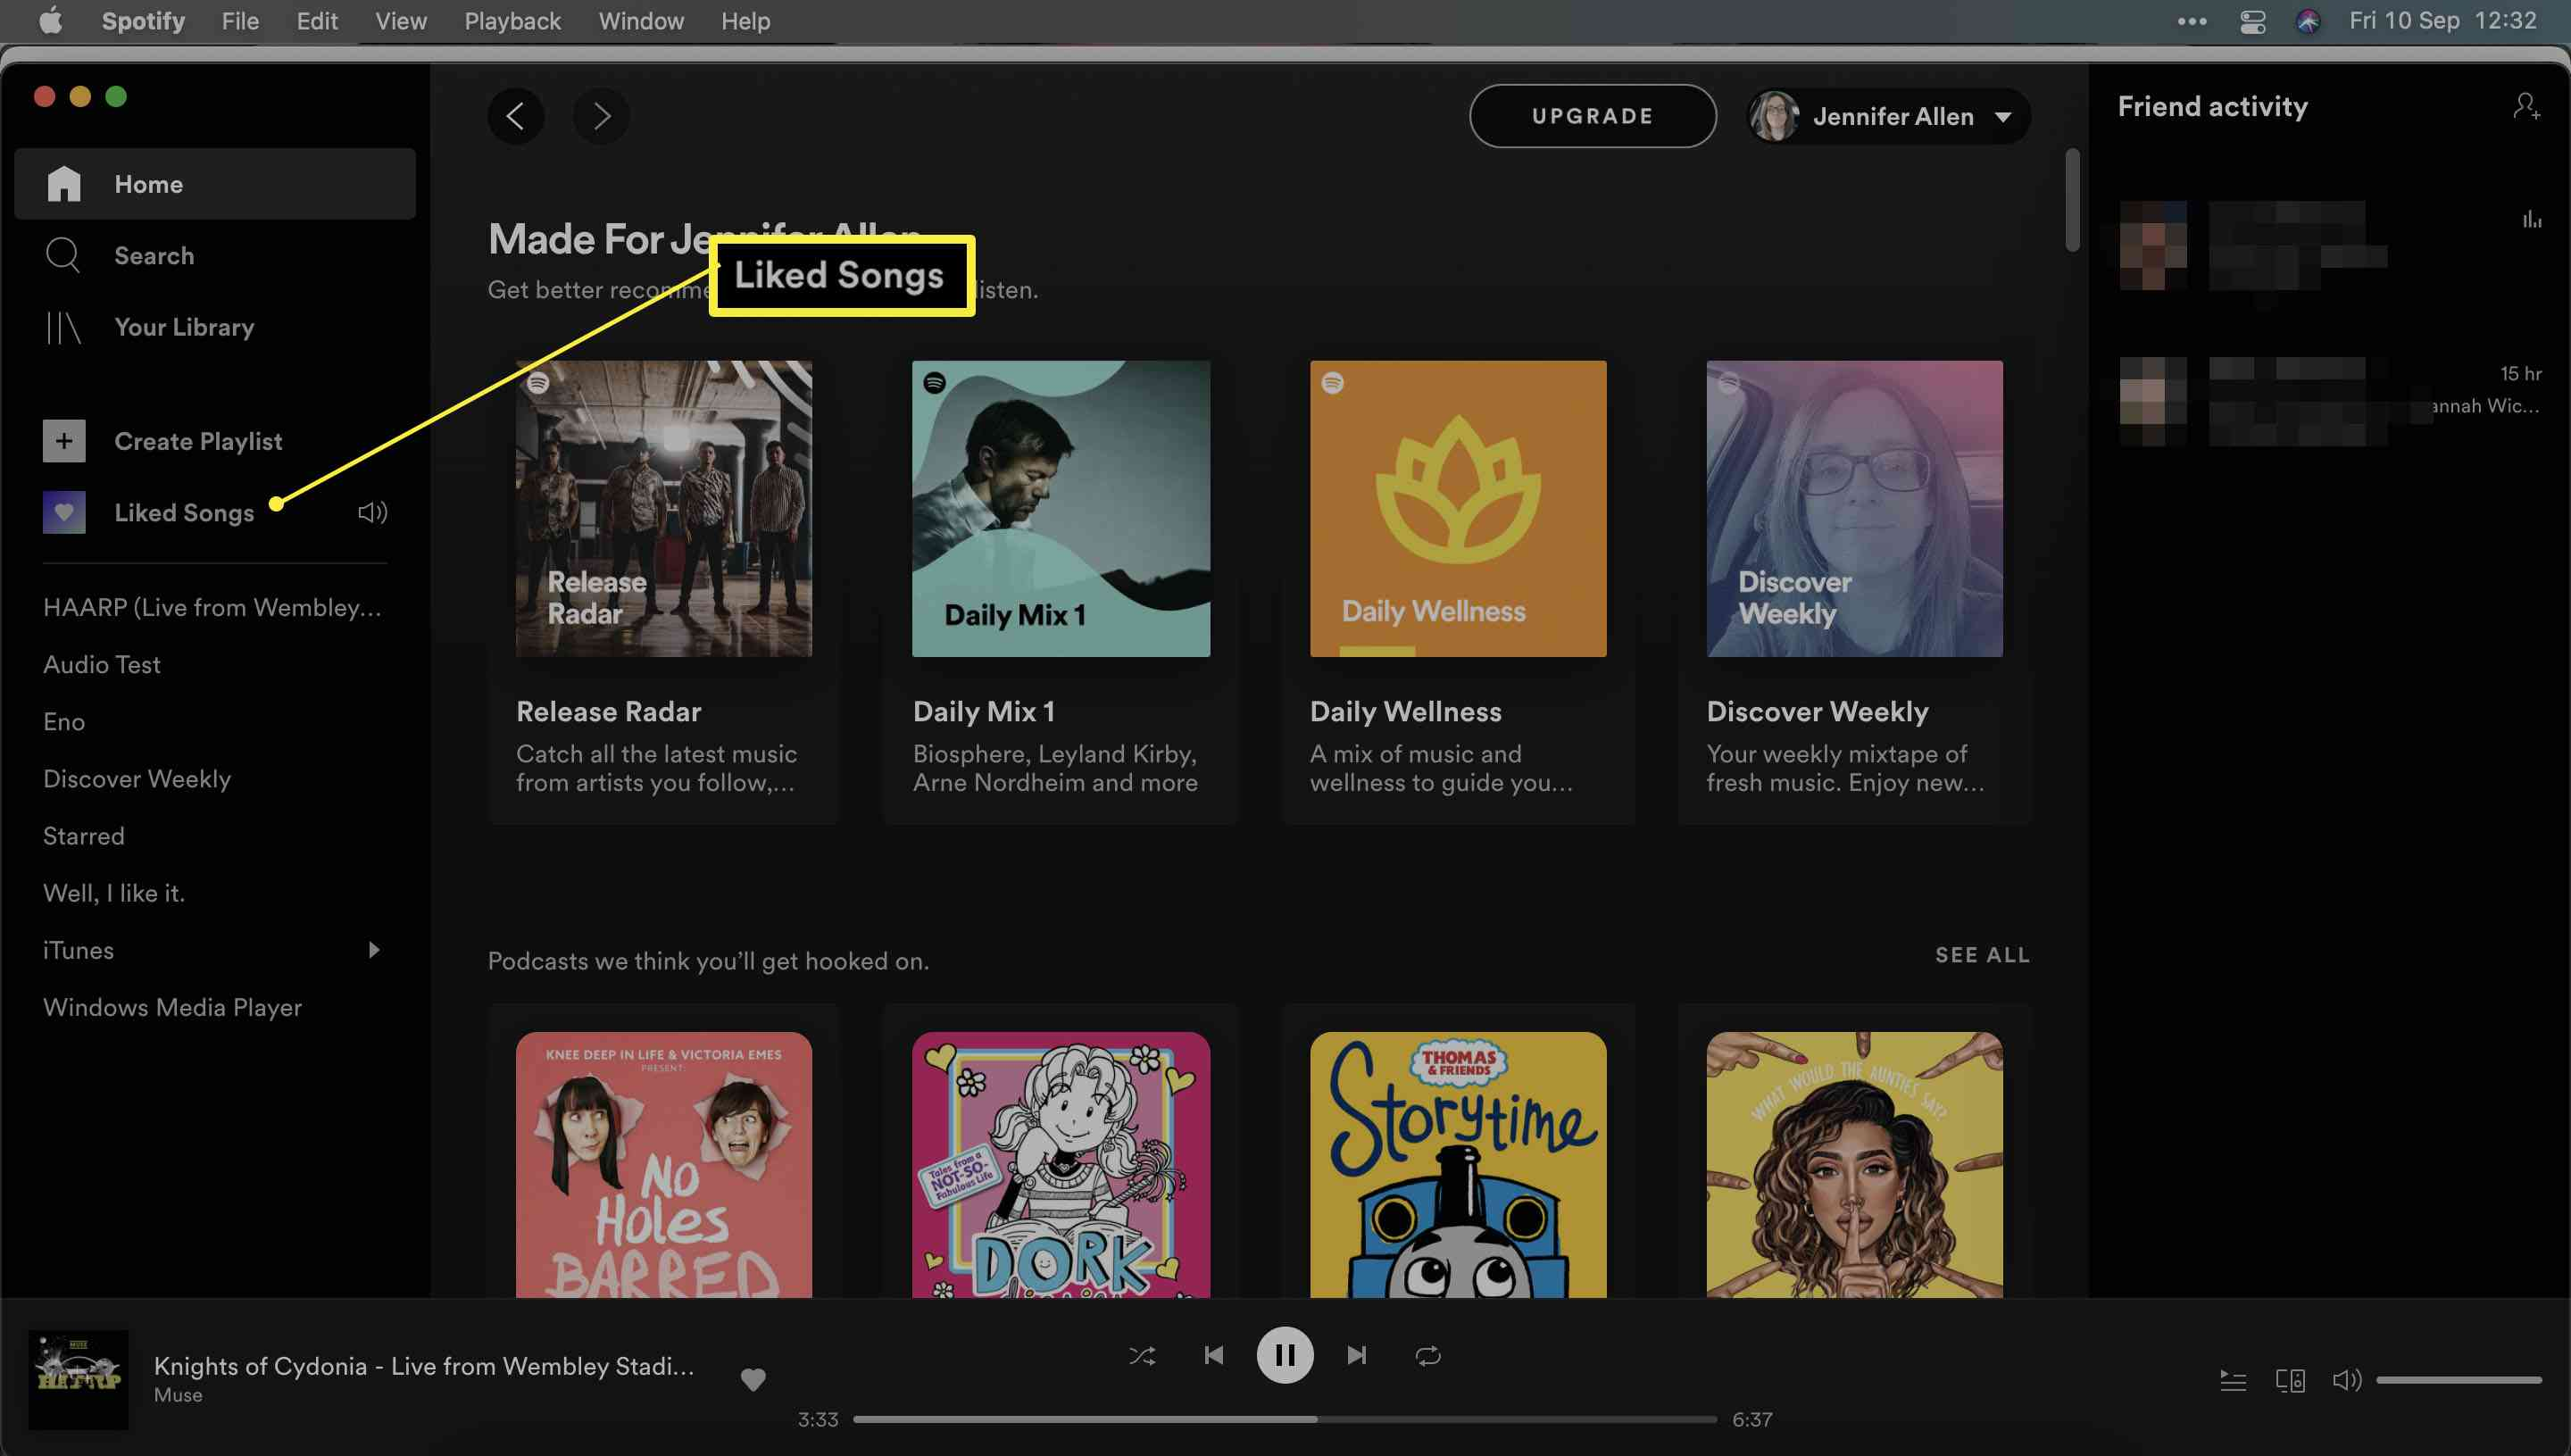 Spotify with Liked Songs highlighted